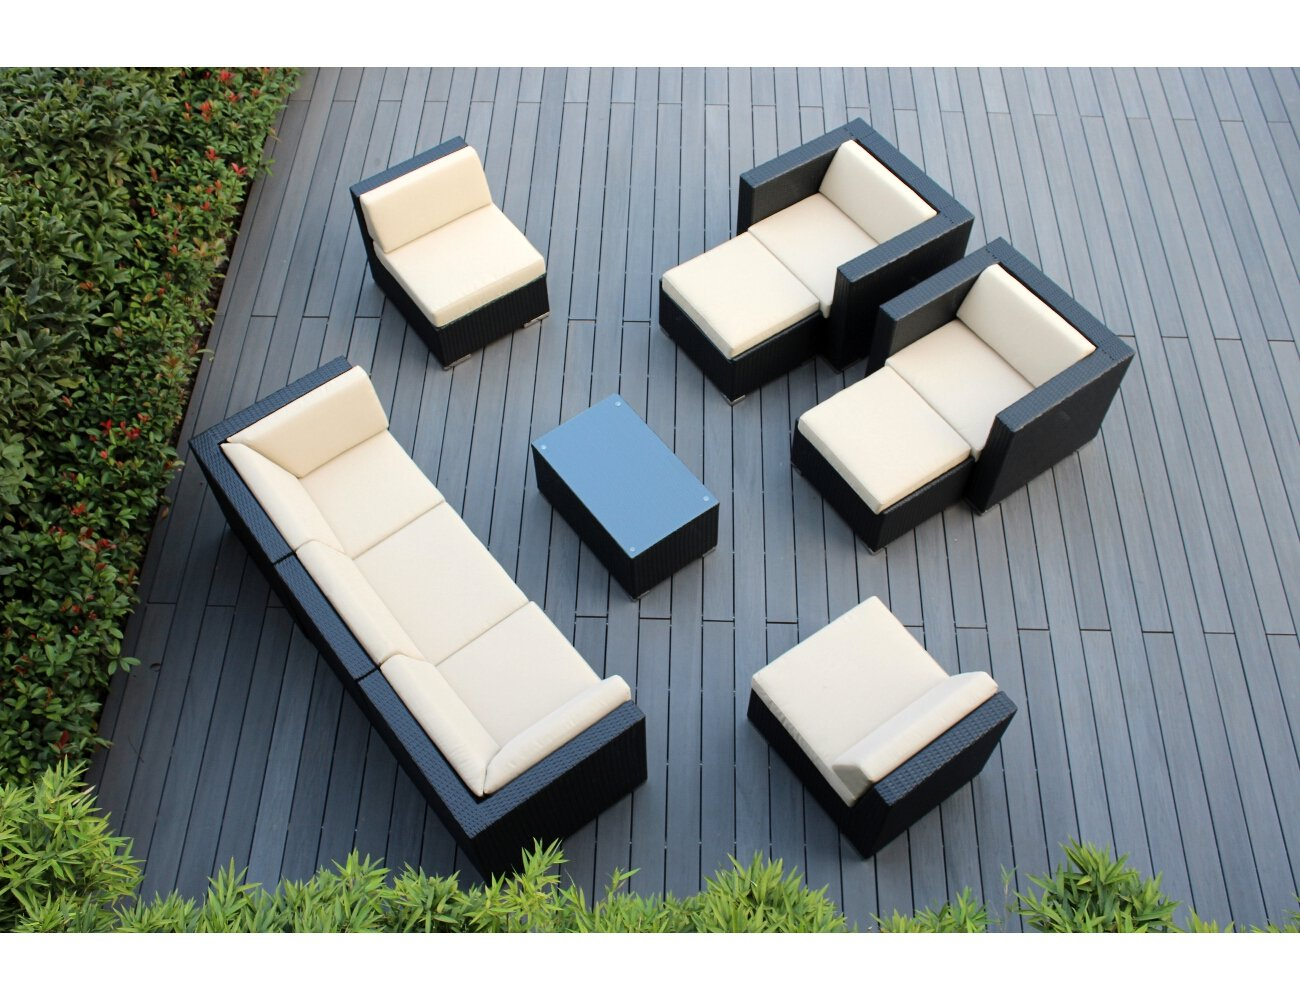 amazoncom ohana 10piece outdoor wicker patio furniture sectional set with weather resistant cushions beige pn1001 patio sofas patio